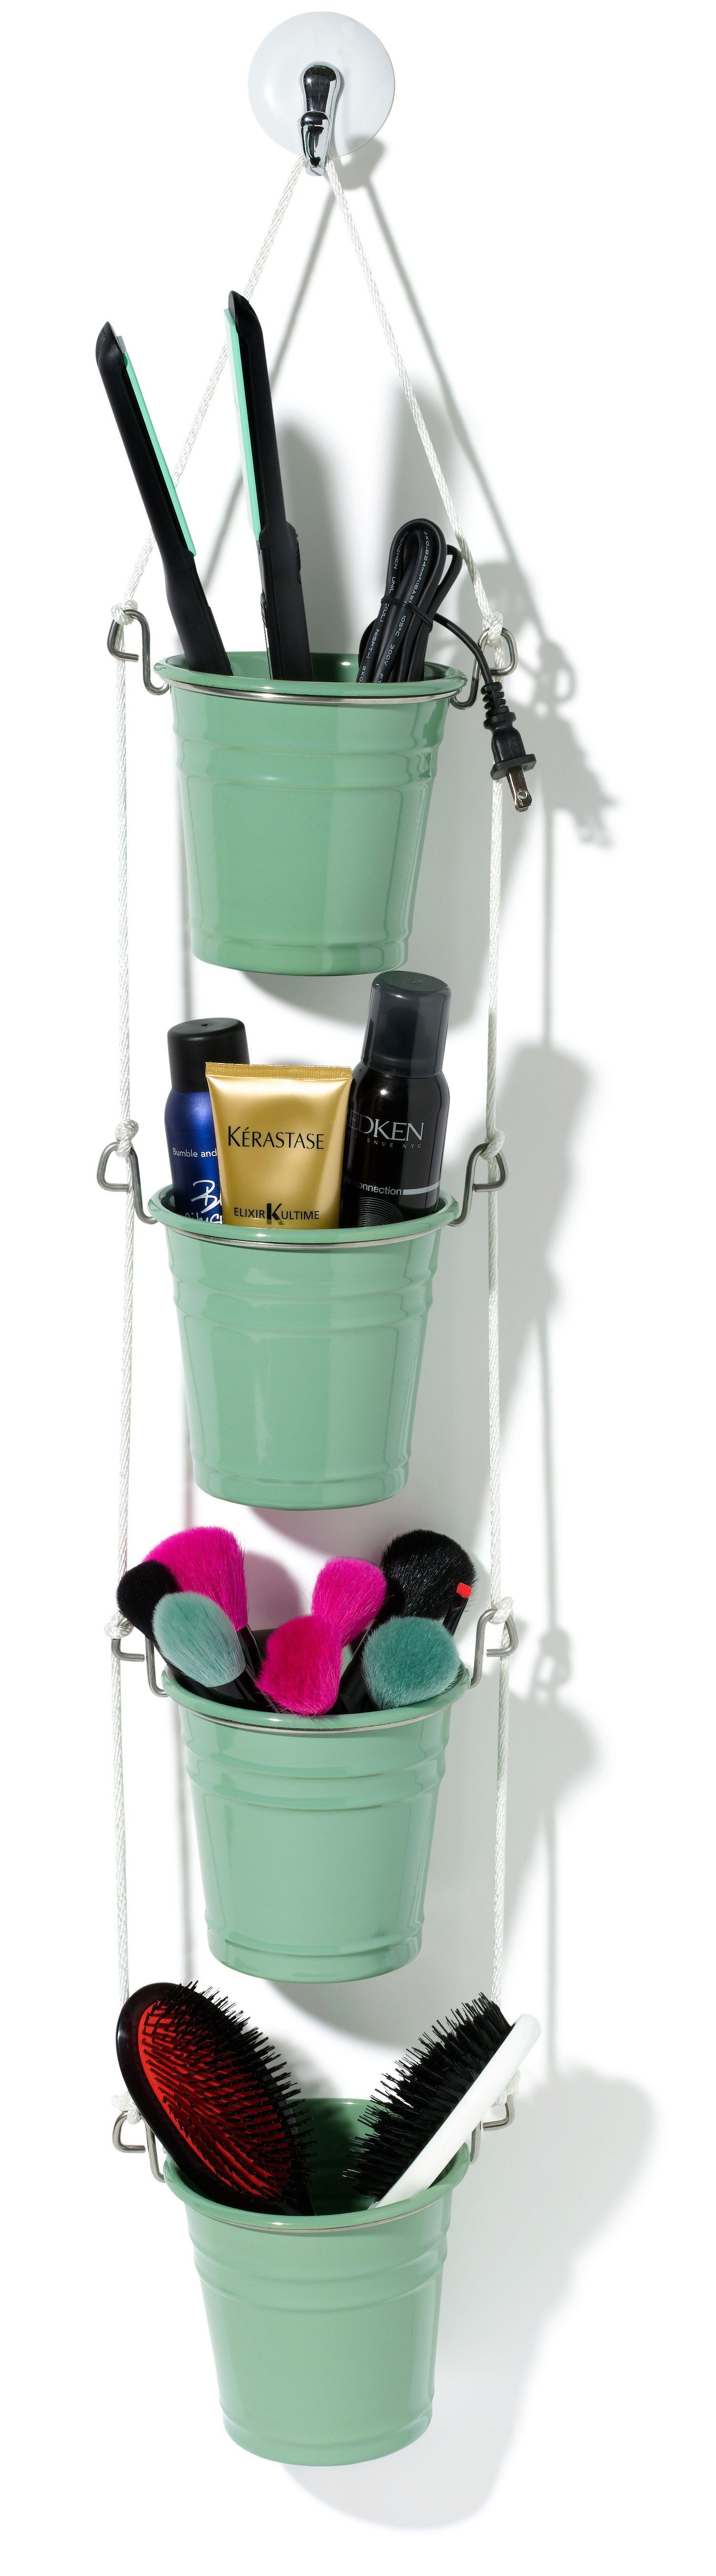 """What better way to tell your mom """"you raised a smartie"""" on Mother's Day than with the gift of DIY organization? It's the gift that keeps on giving, really...."""